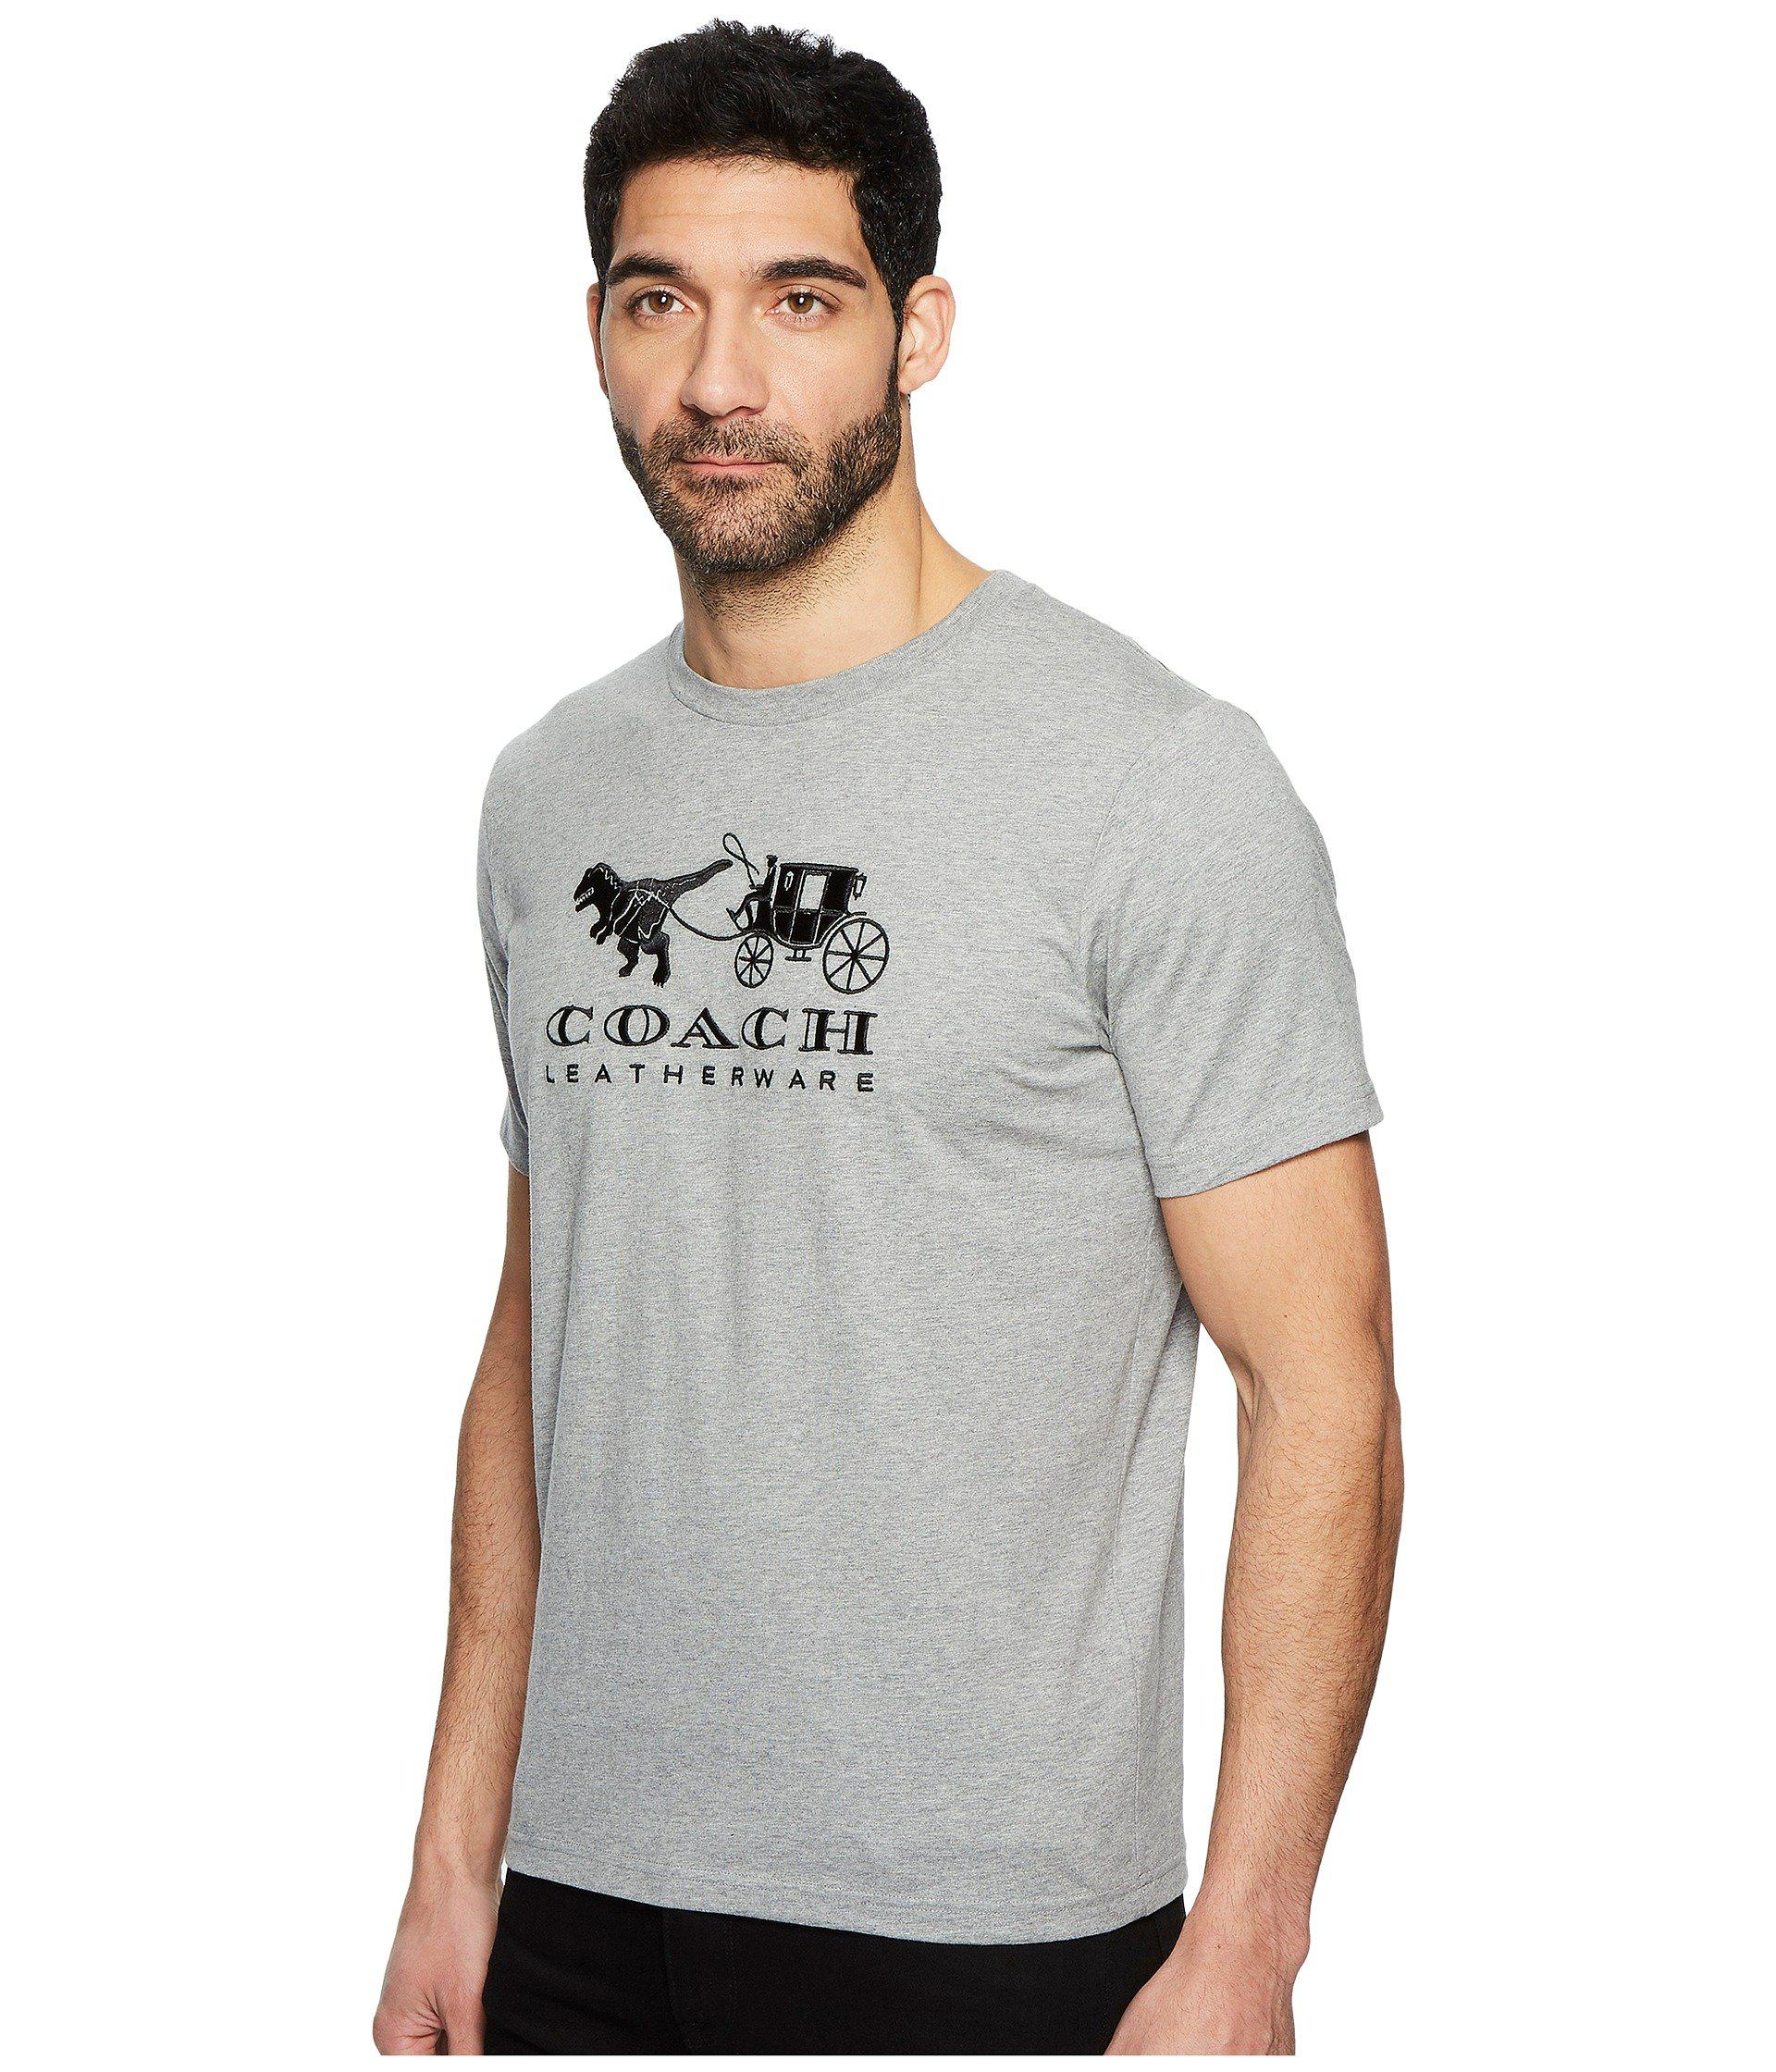 87347a5f1c Men's Gray Rexy And Carriage T-shirt